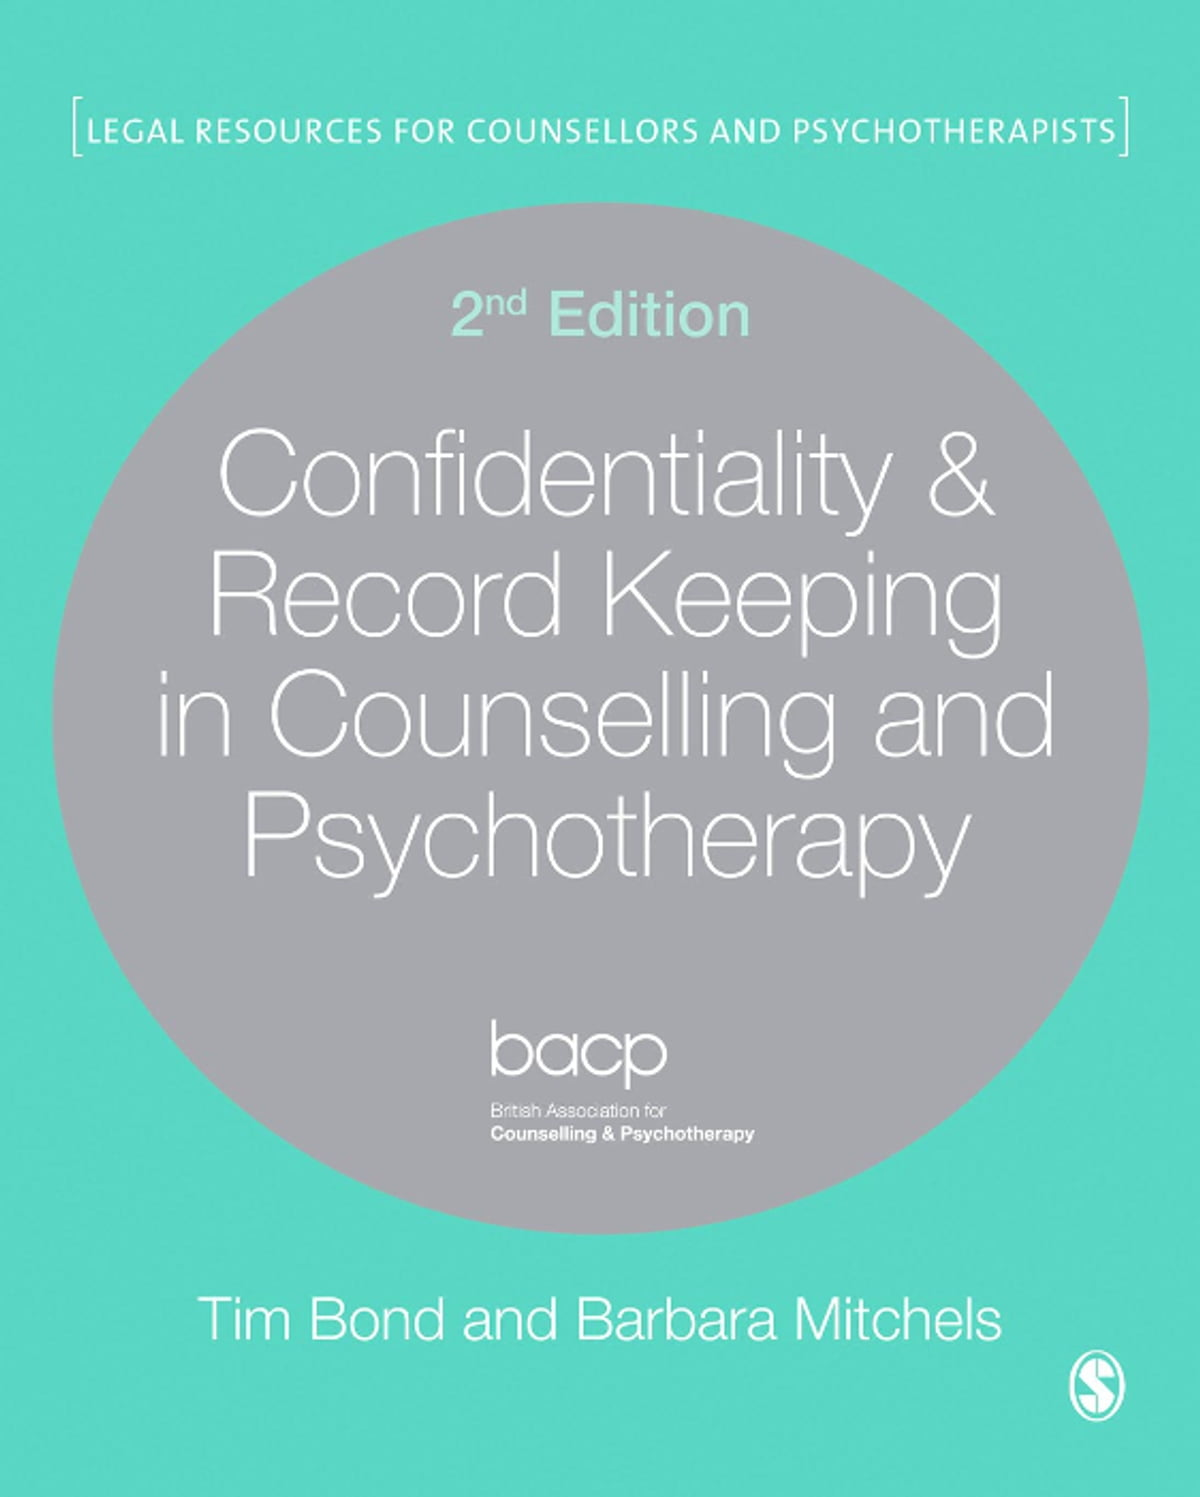 confidentiality record keeping in counselling psychotherapy legal resources counsellors psychotherapists